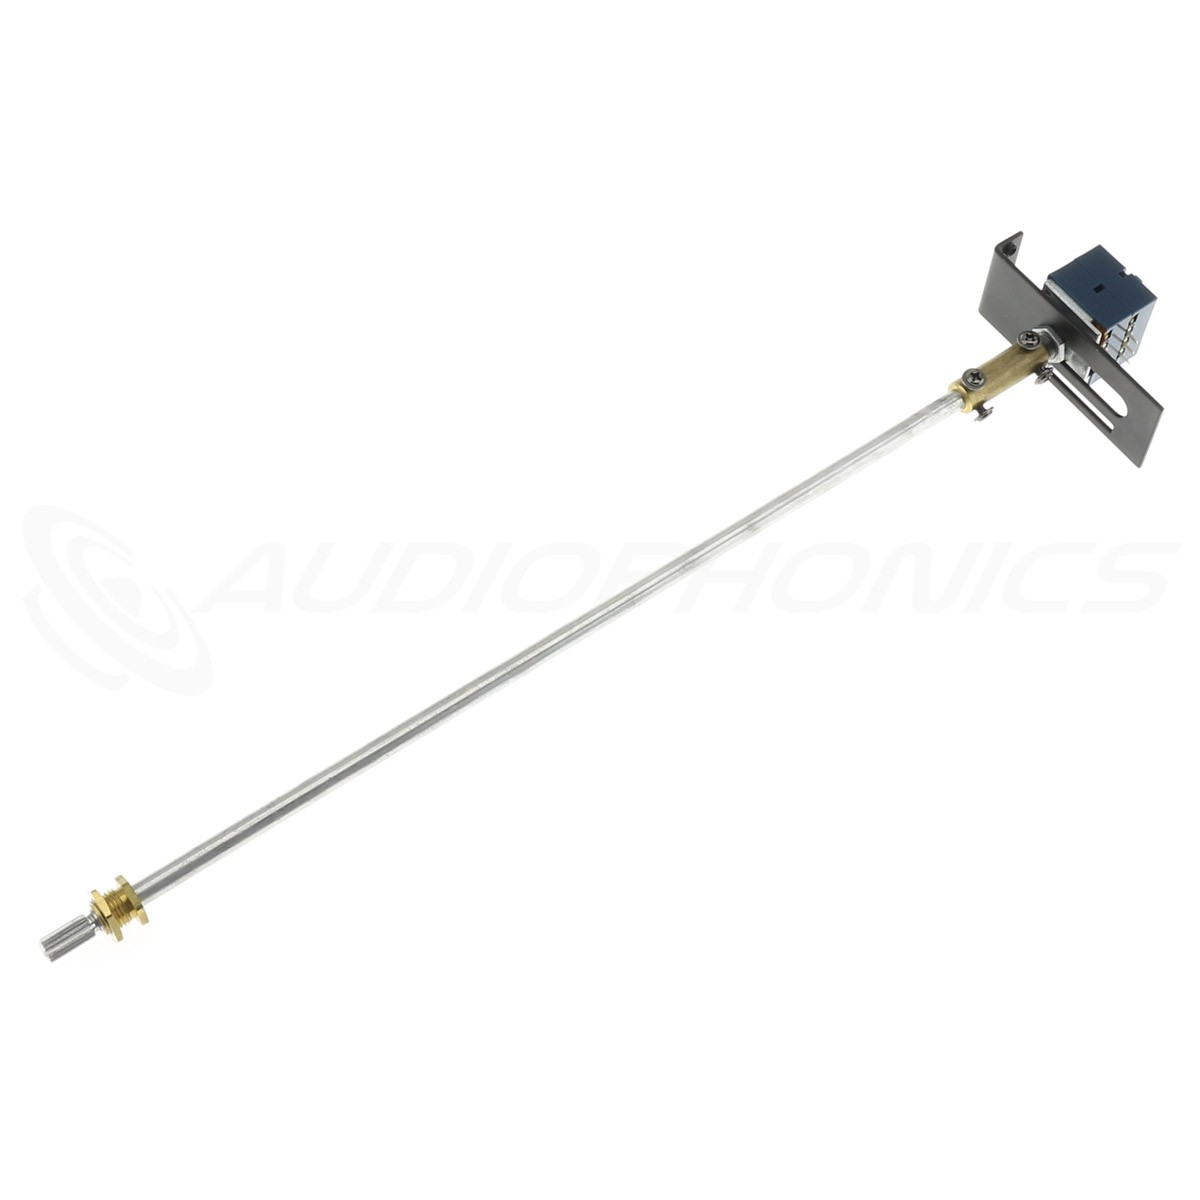 Potentiometer Axis Extension Kit 300mm Ø6mm